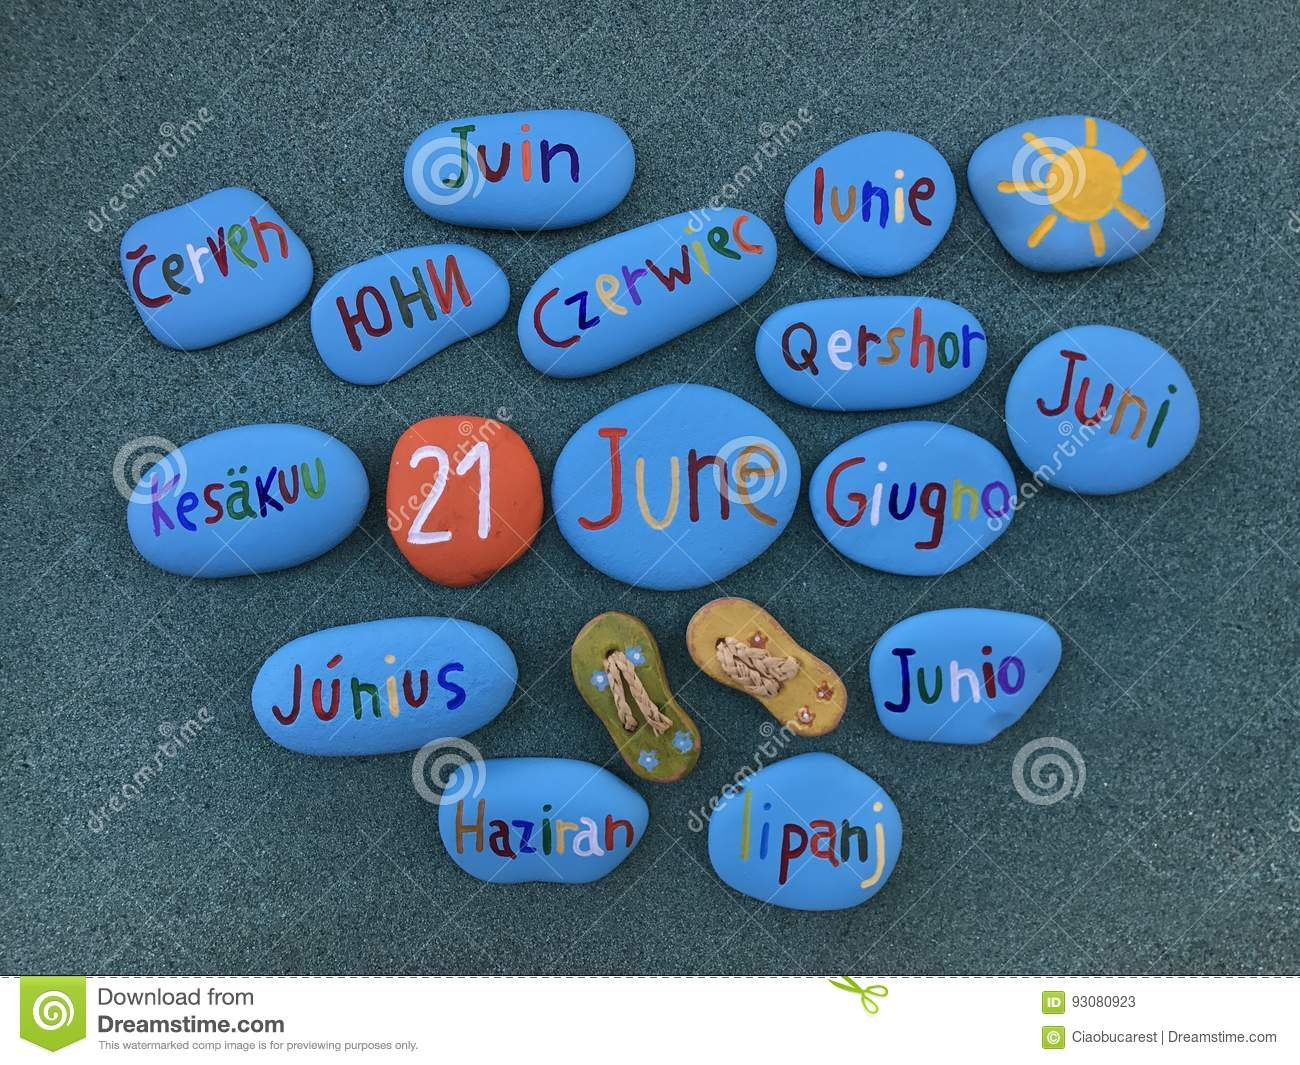 21 June in many languages on stones